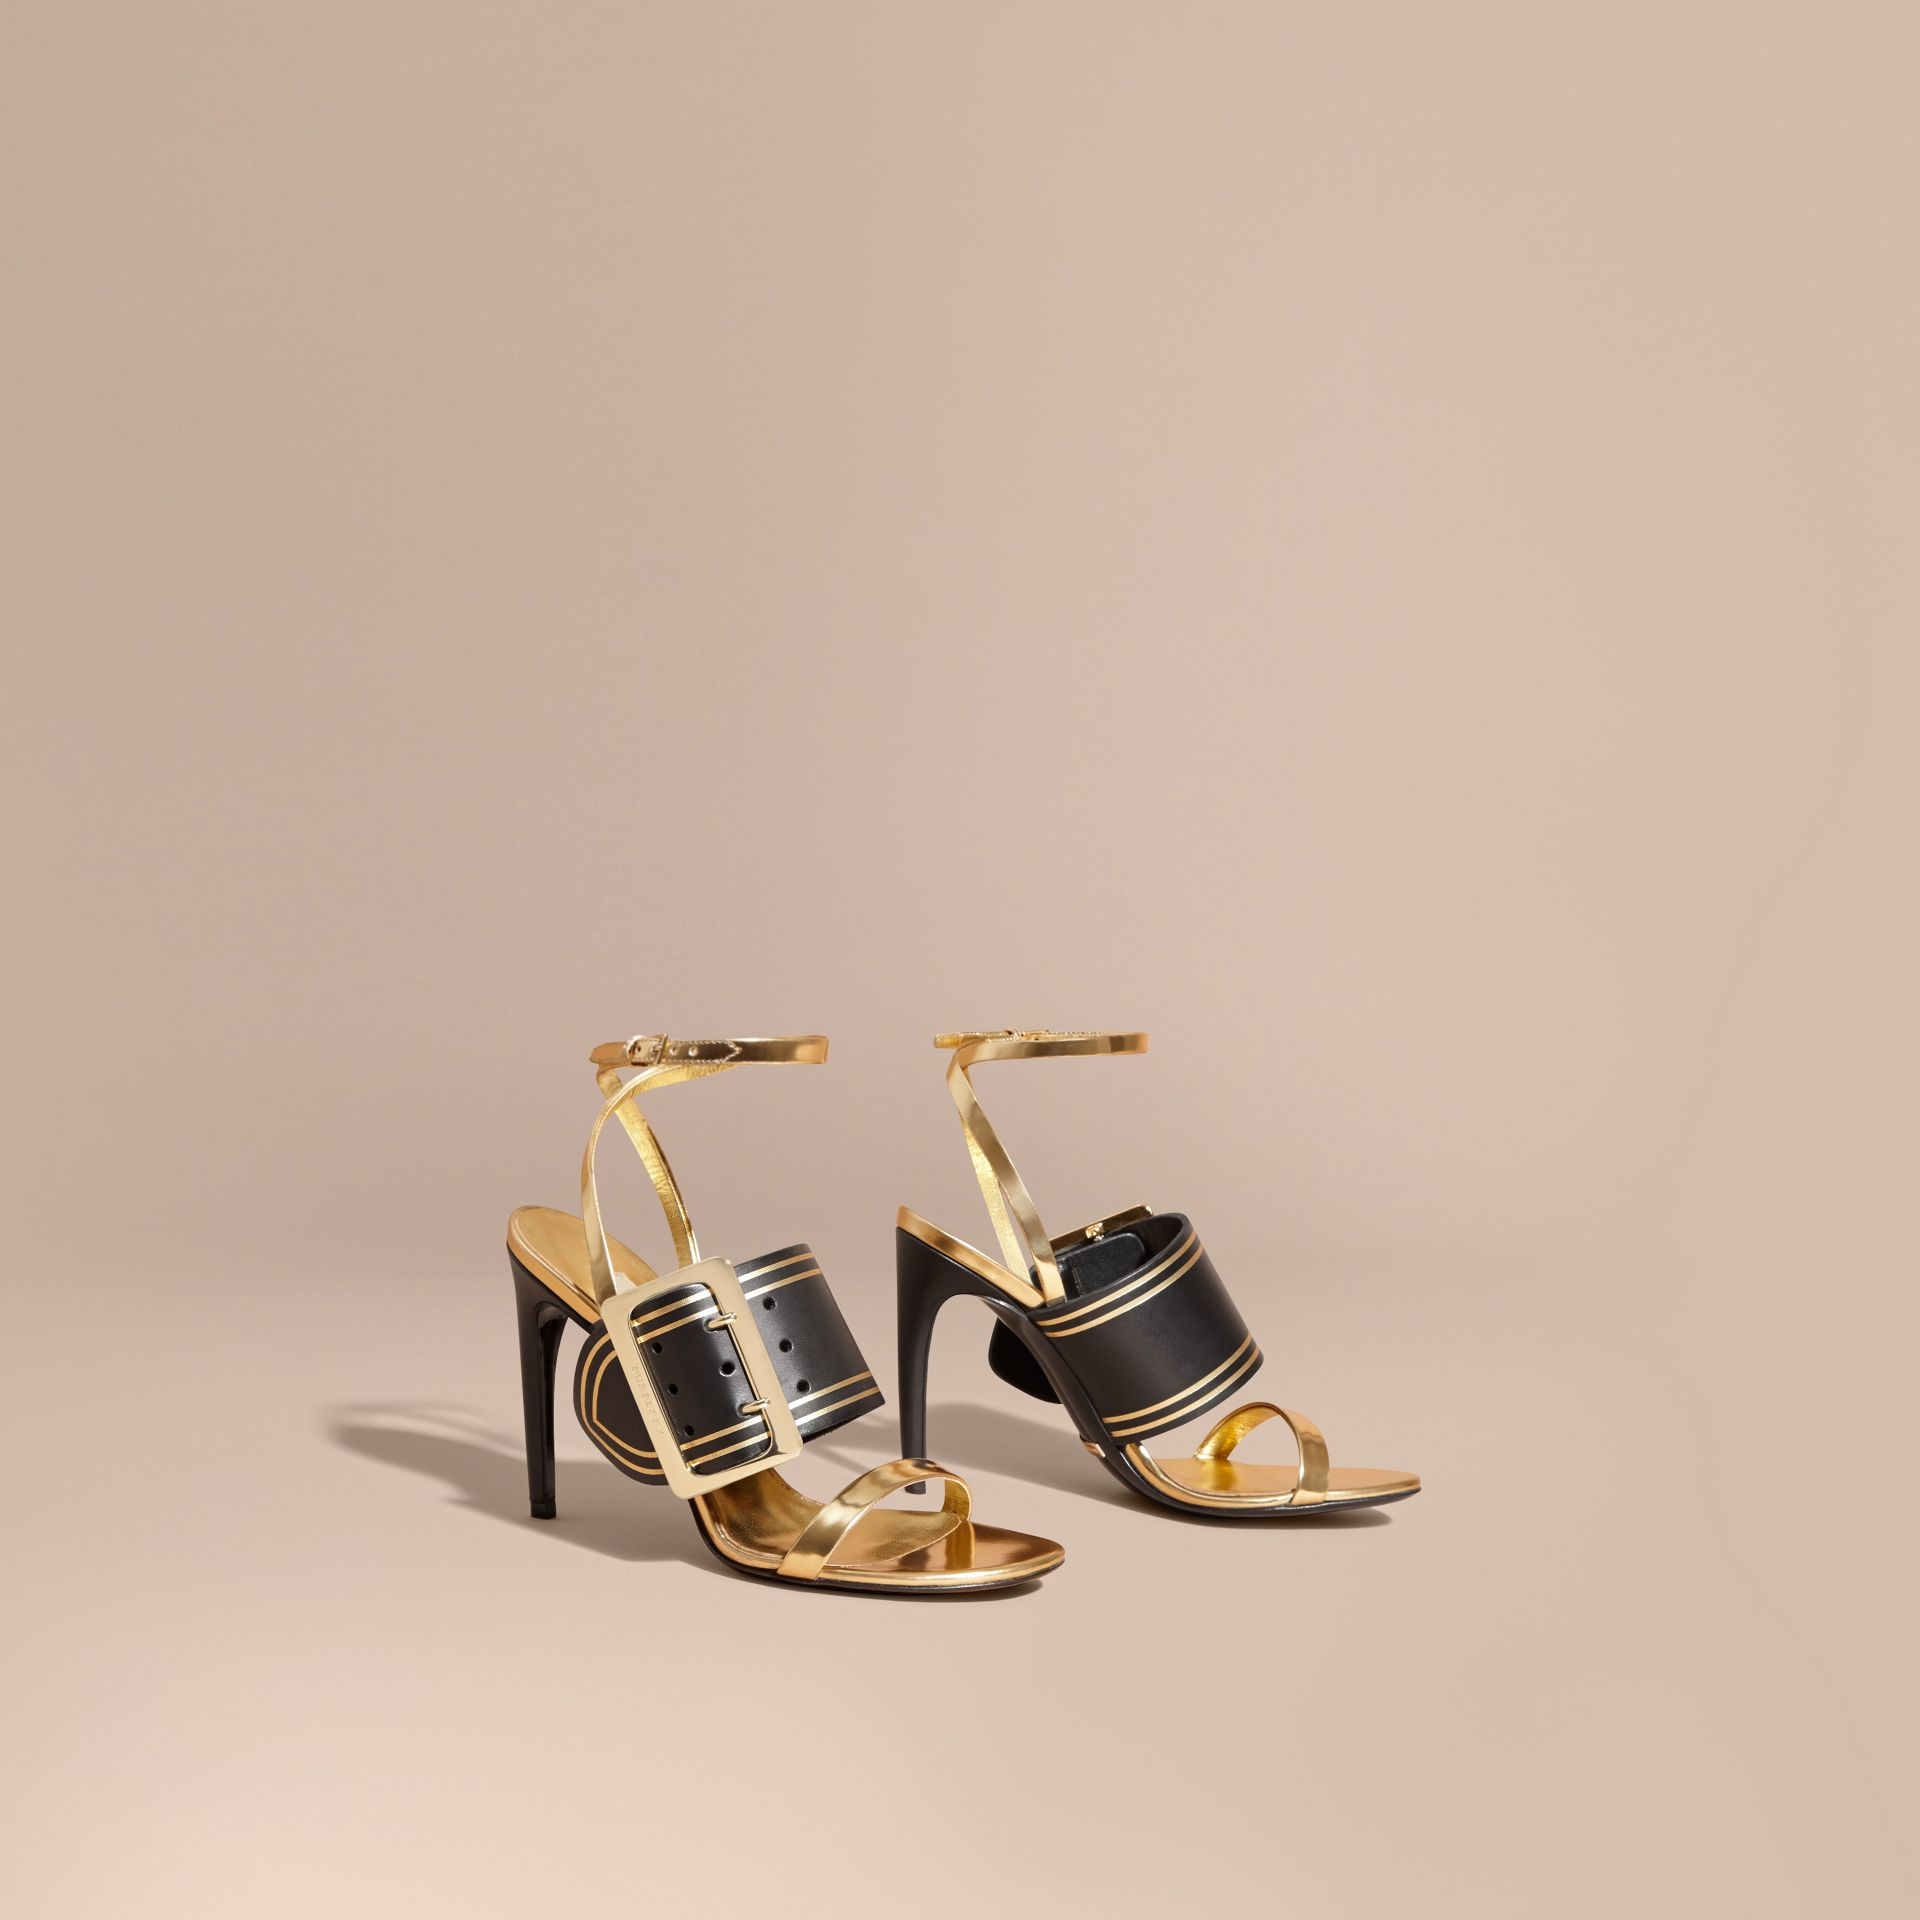 Two-tone Leather Sandals with Buckles - Women | Burberry - gallery image 1